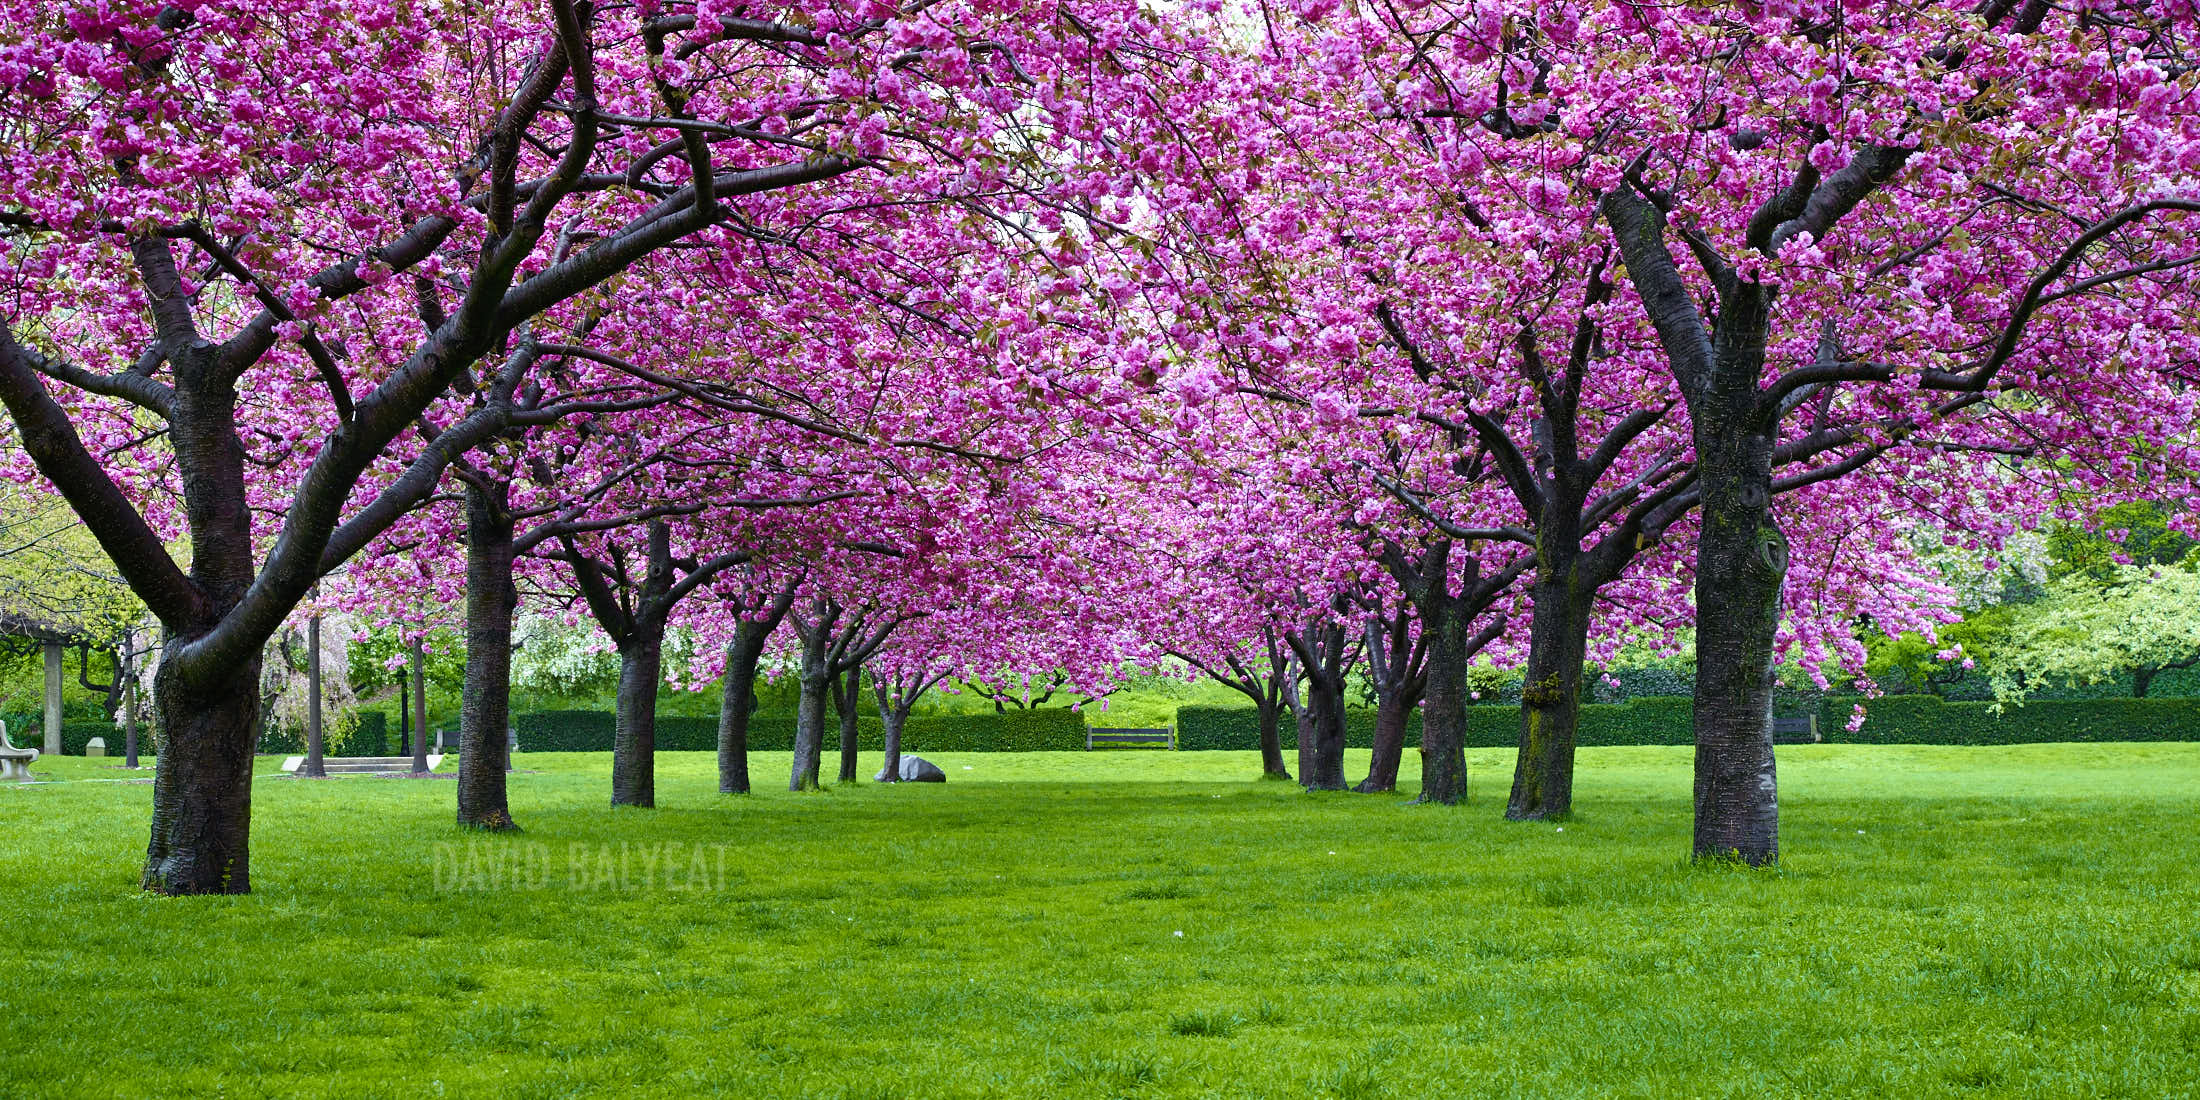 Pink cherry blossoms Brooklyn Botanic Garden David Balyeat photography